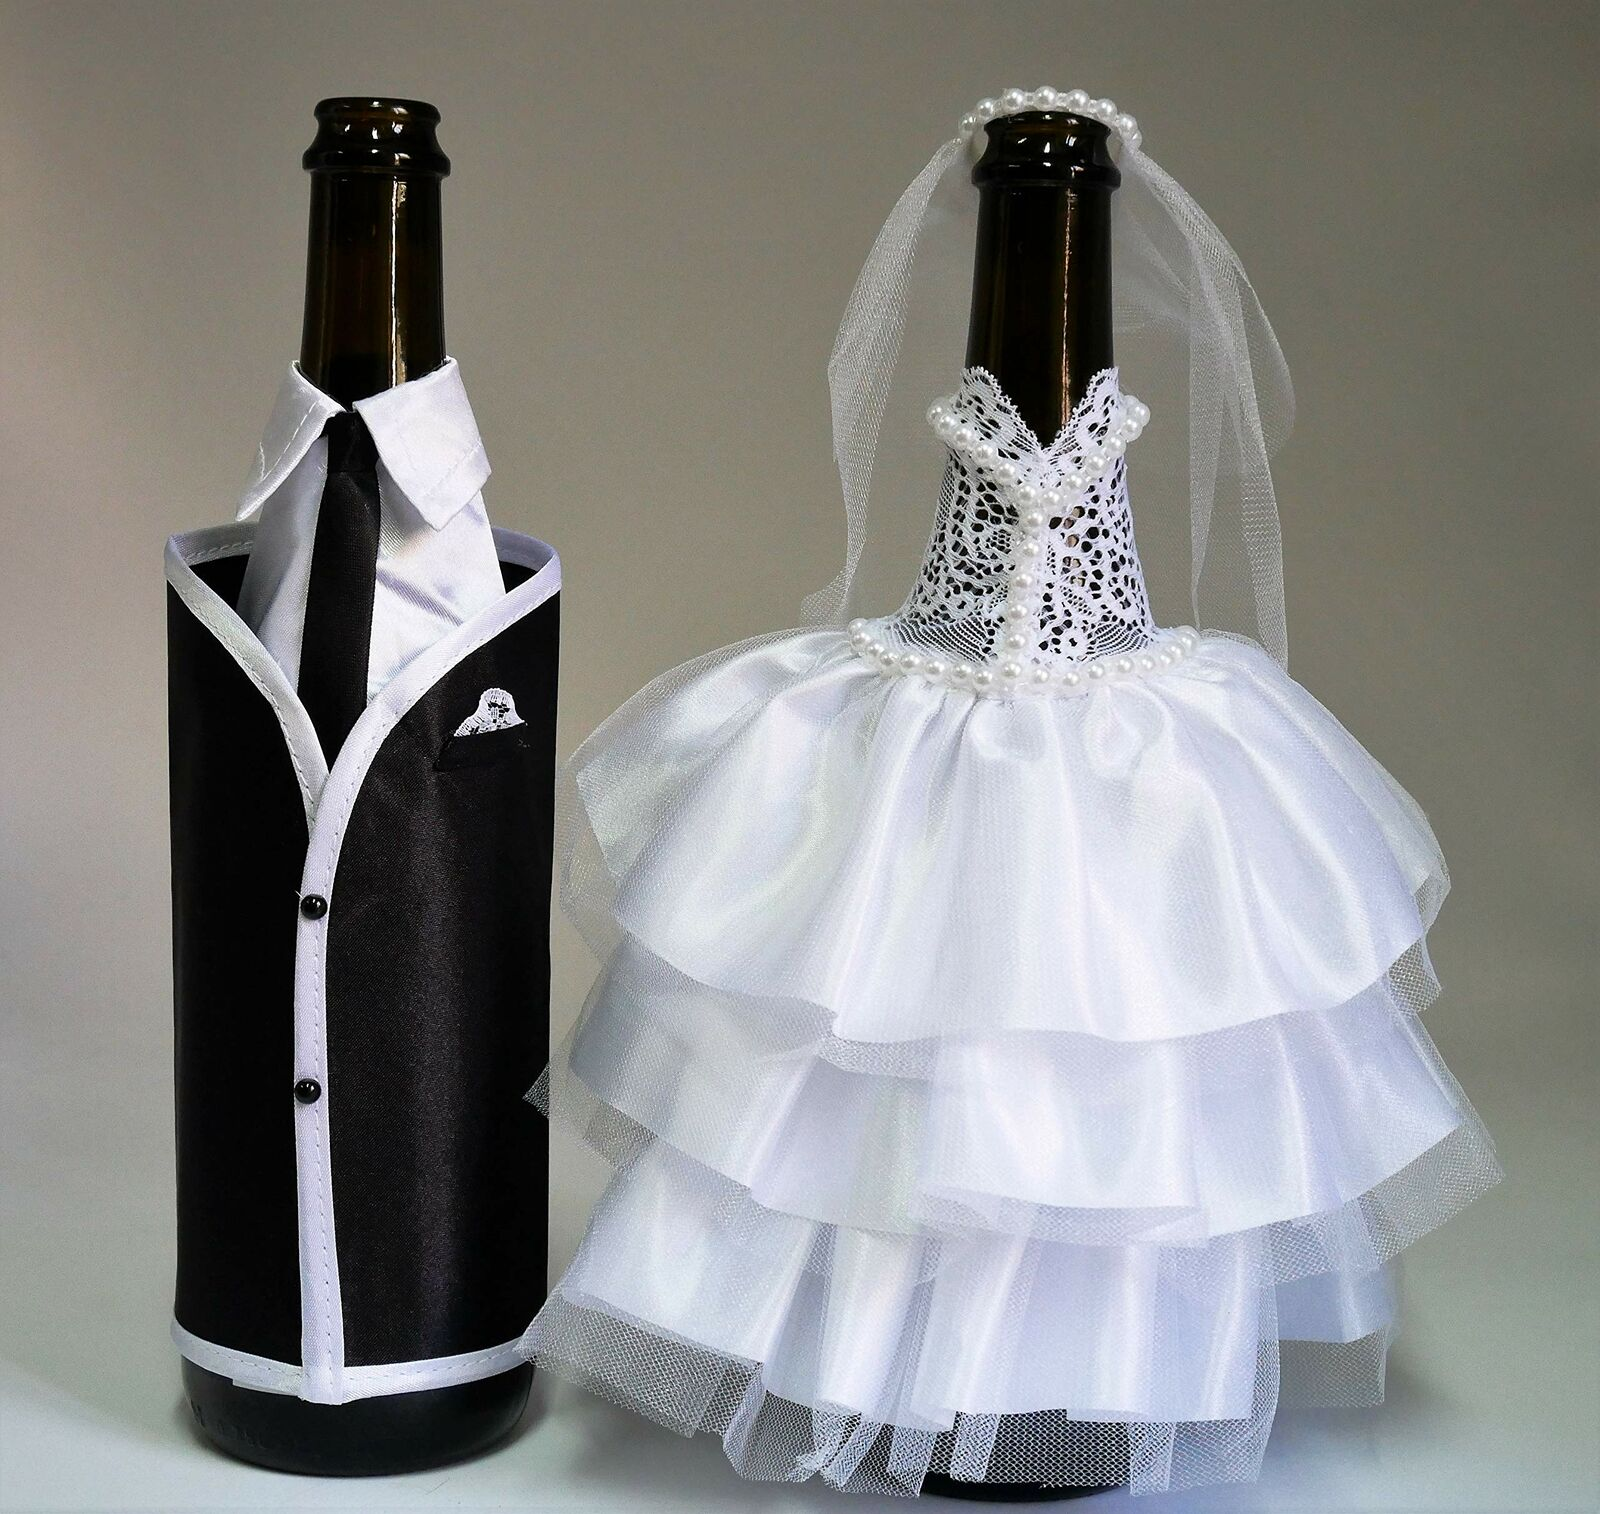 Bride and Groom Wine Bottle Covers dress-up for Weddings Good For Wedding  Gifts for sale online